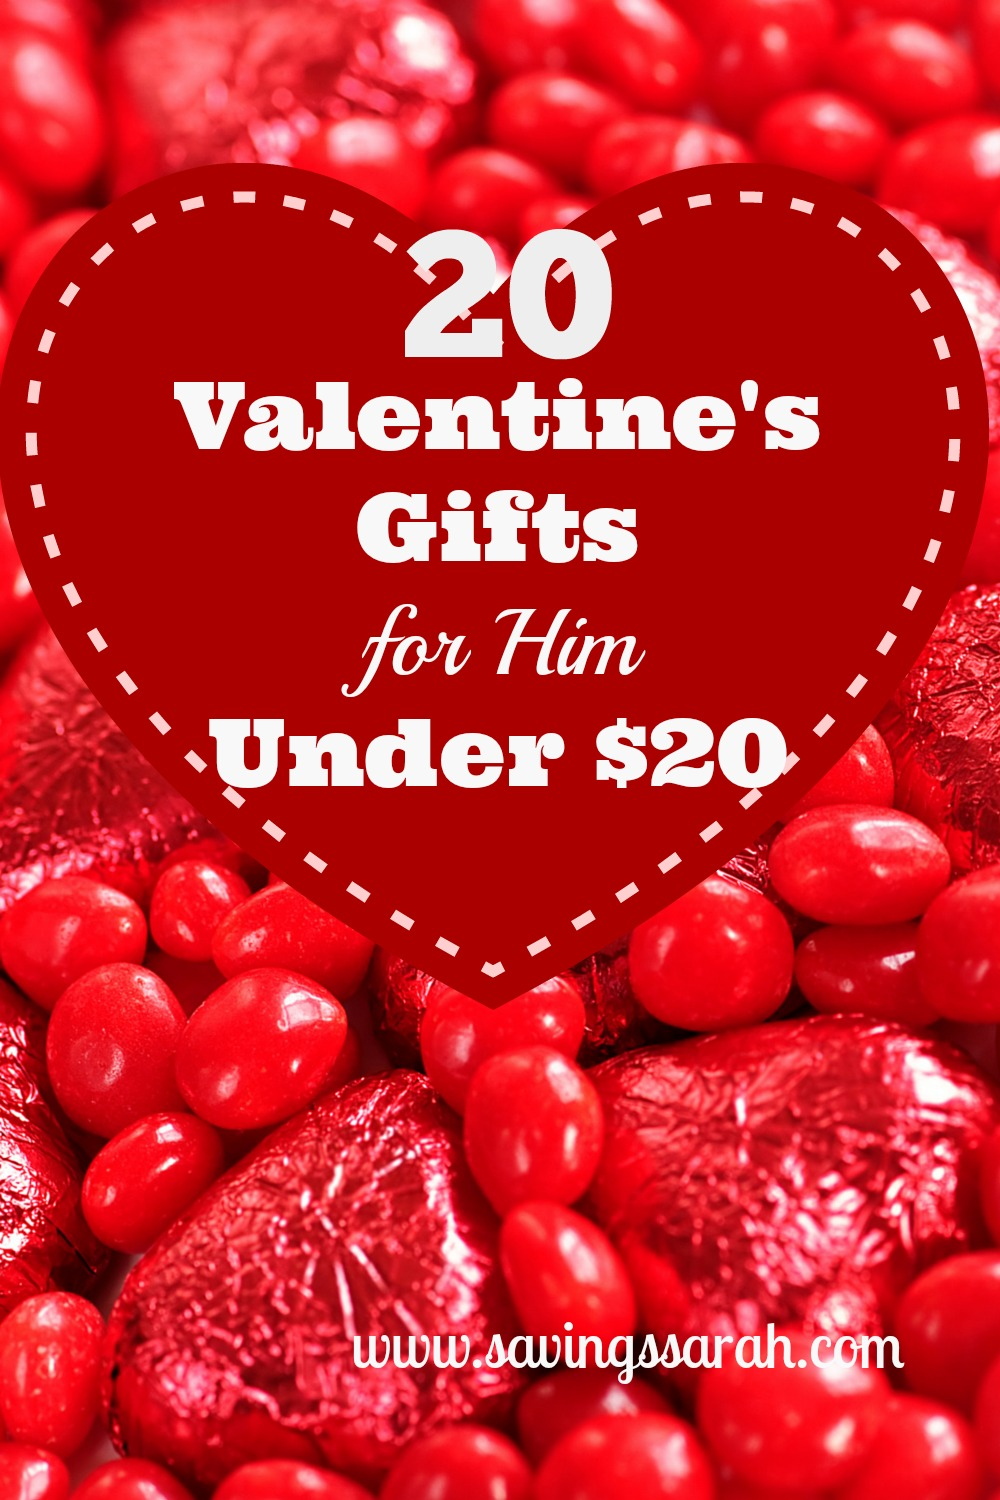 20 Valentine's Gifts for Him Under $20 - Earning and ...